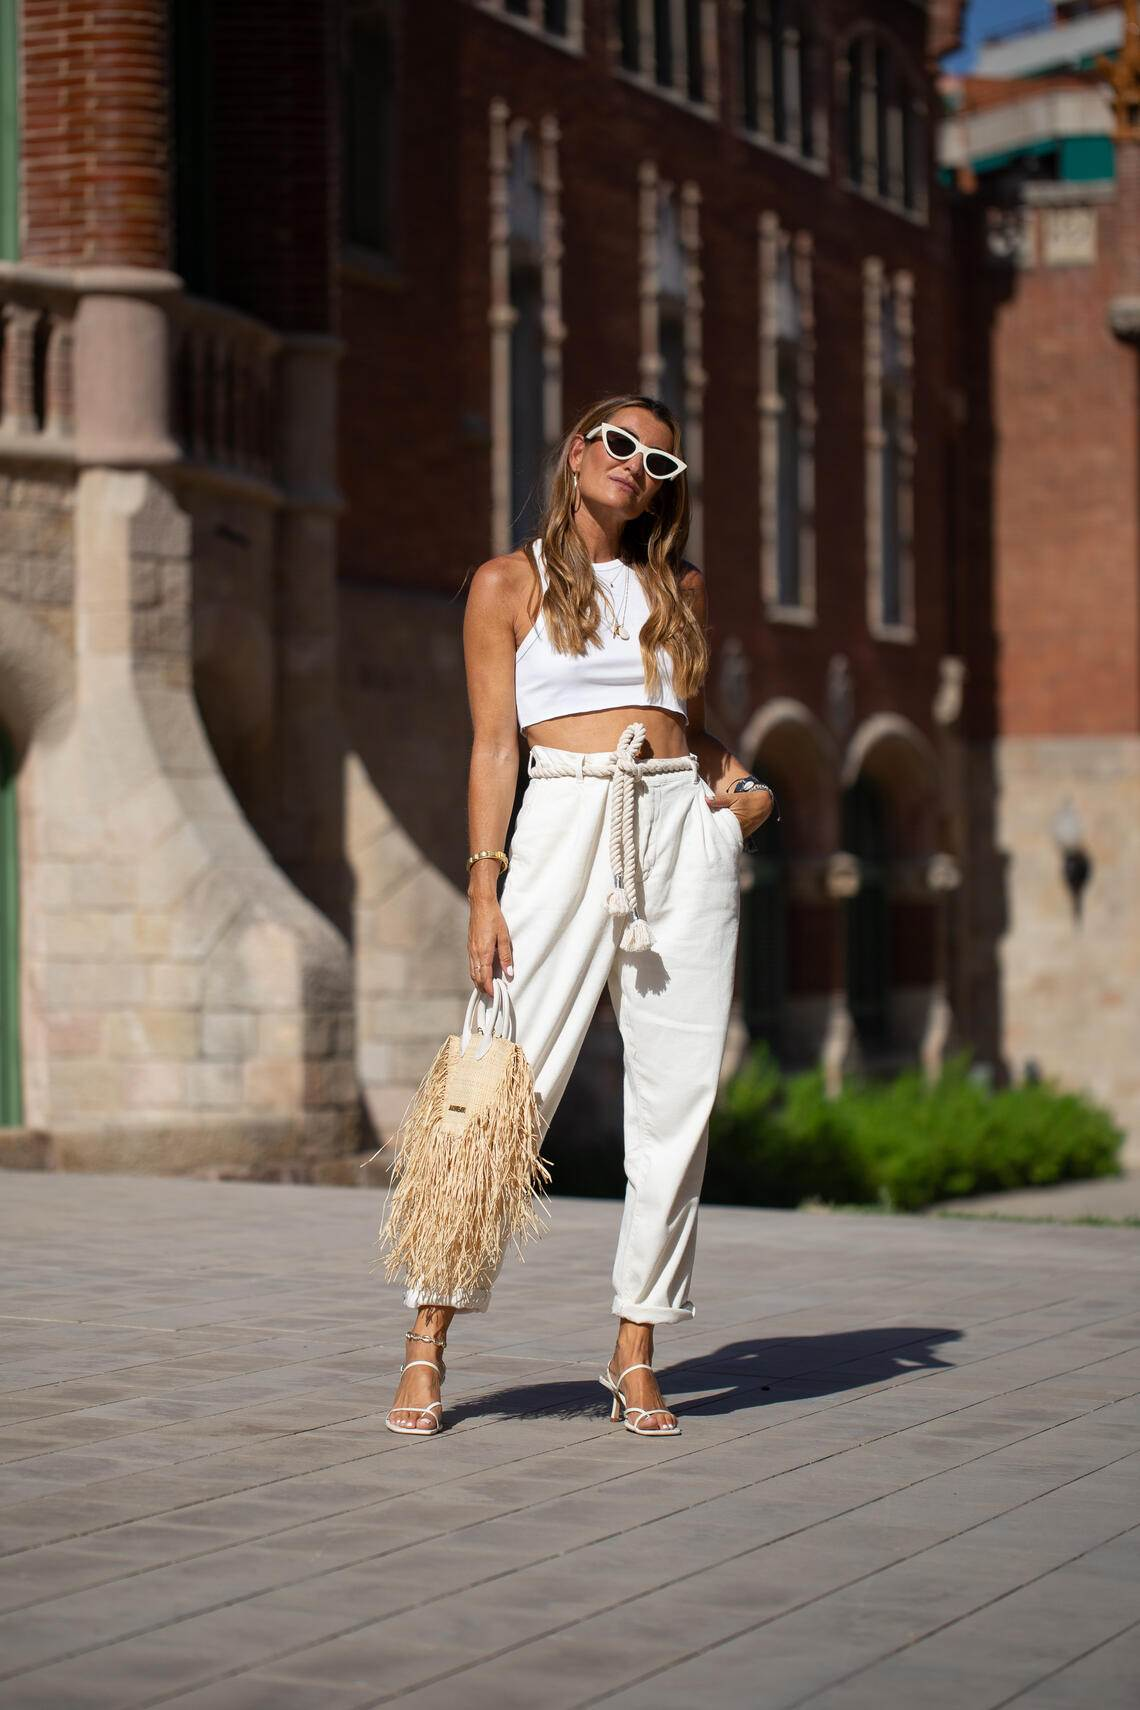 BARCELONA, SPAIN - JUNE 27: A guest is seen on the street attending 080 Barcelona Fashion Week wearing white crop top, white high-waist pants and a Jacquemus straw bag on June 27, 2019 in Barcelona, Spain. (Photo by Matthew Sperzel/Getty Images)